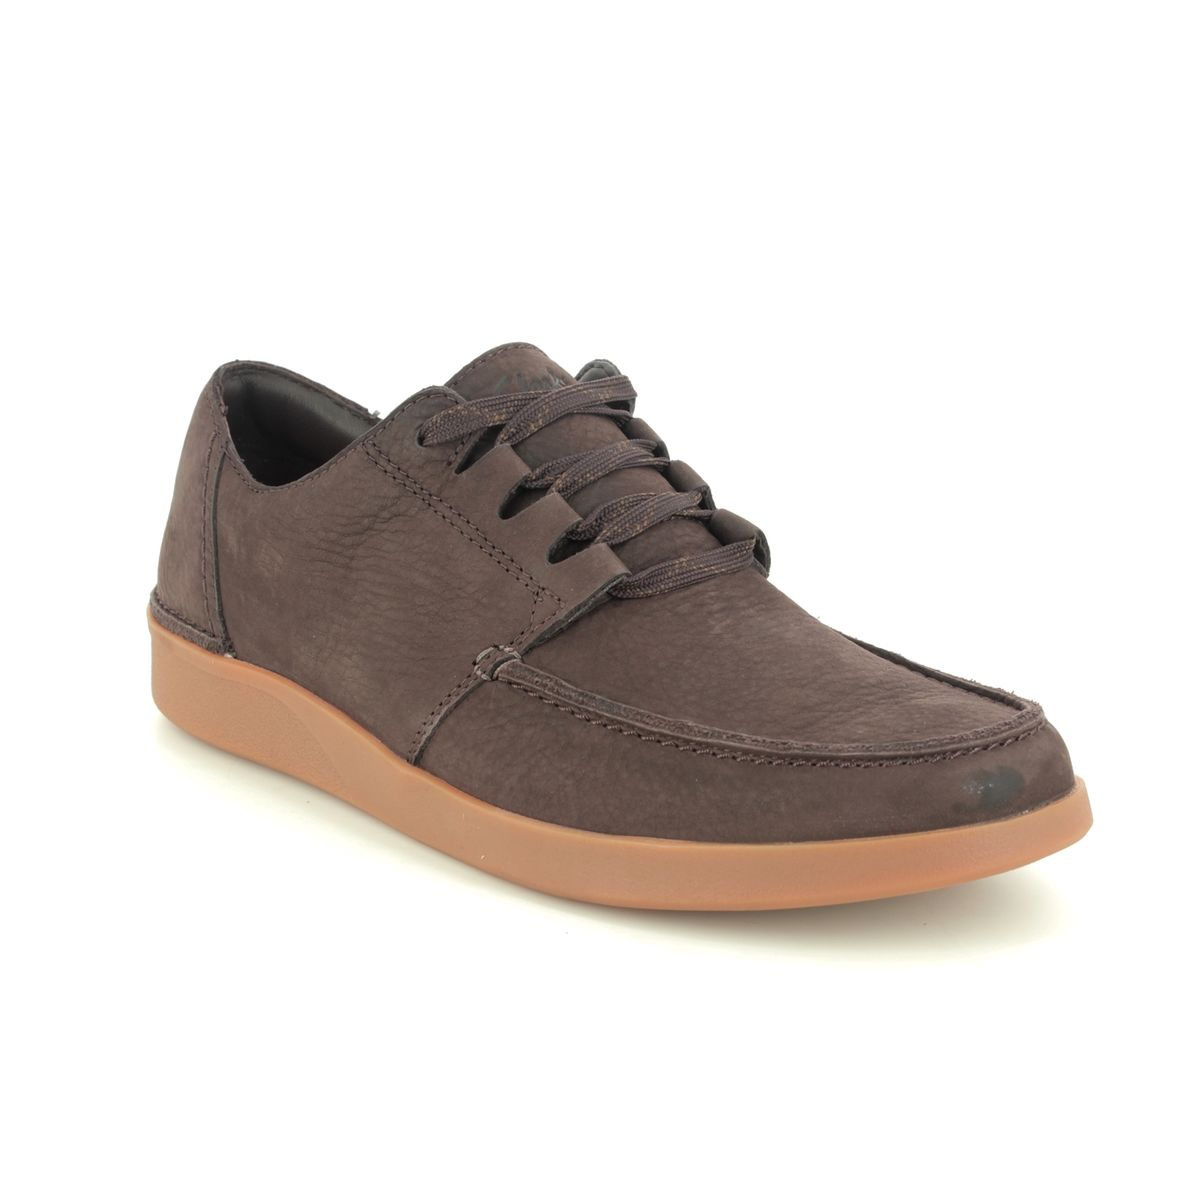 Clarks Oakland Walk G Fit Brown casual